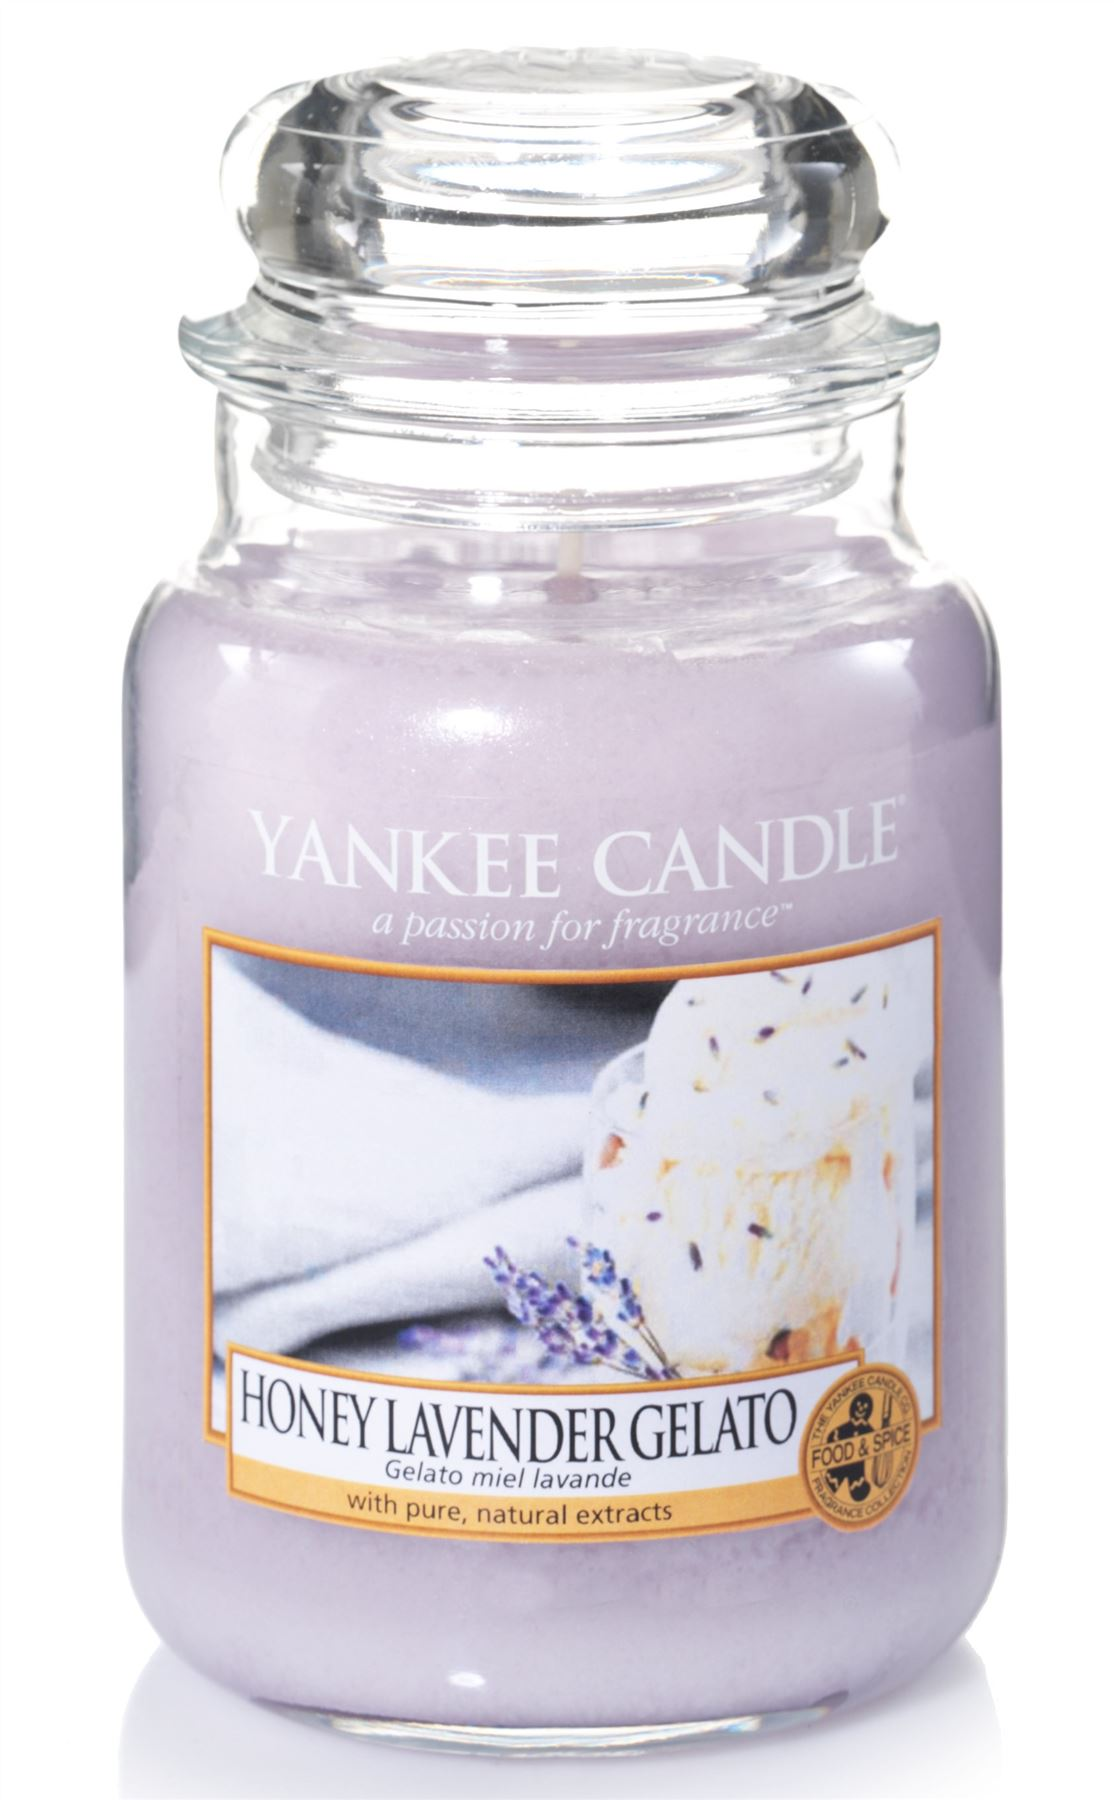 Yankee-Candle-Sale-Large-Jars-Reduced-and-Limited-Edition-Fragrances